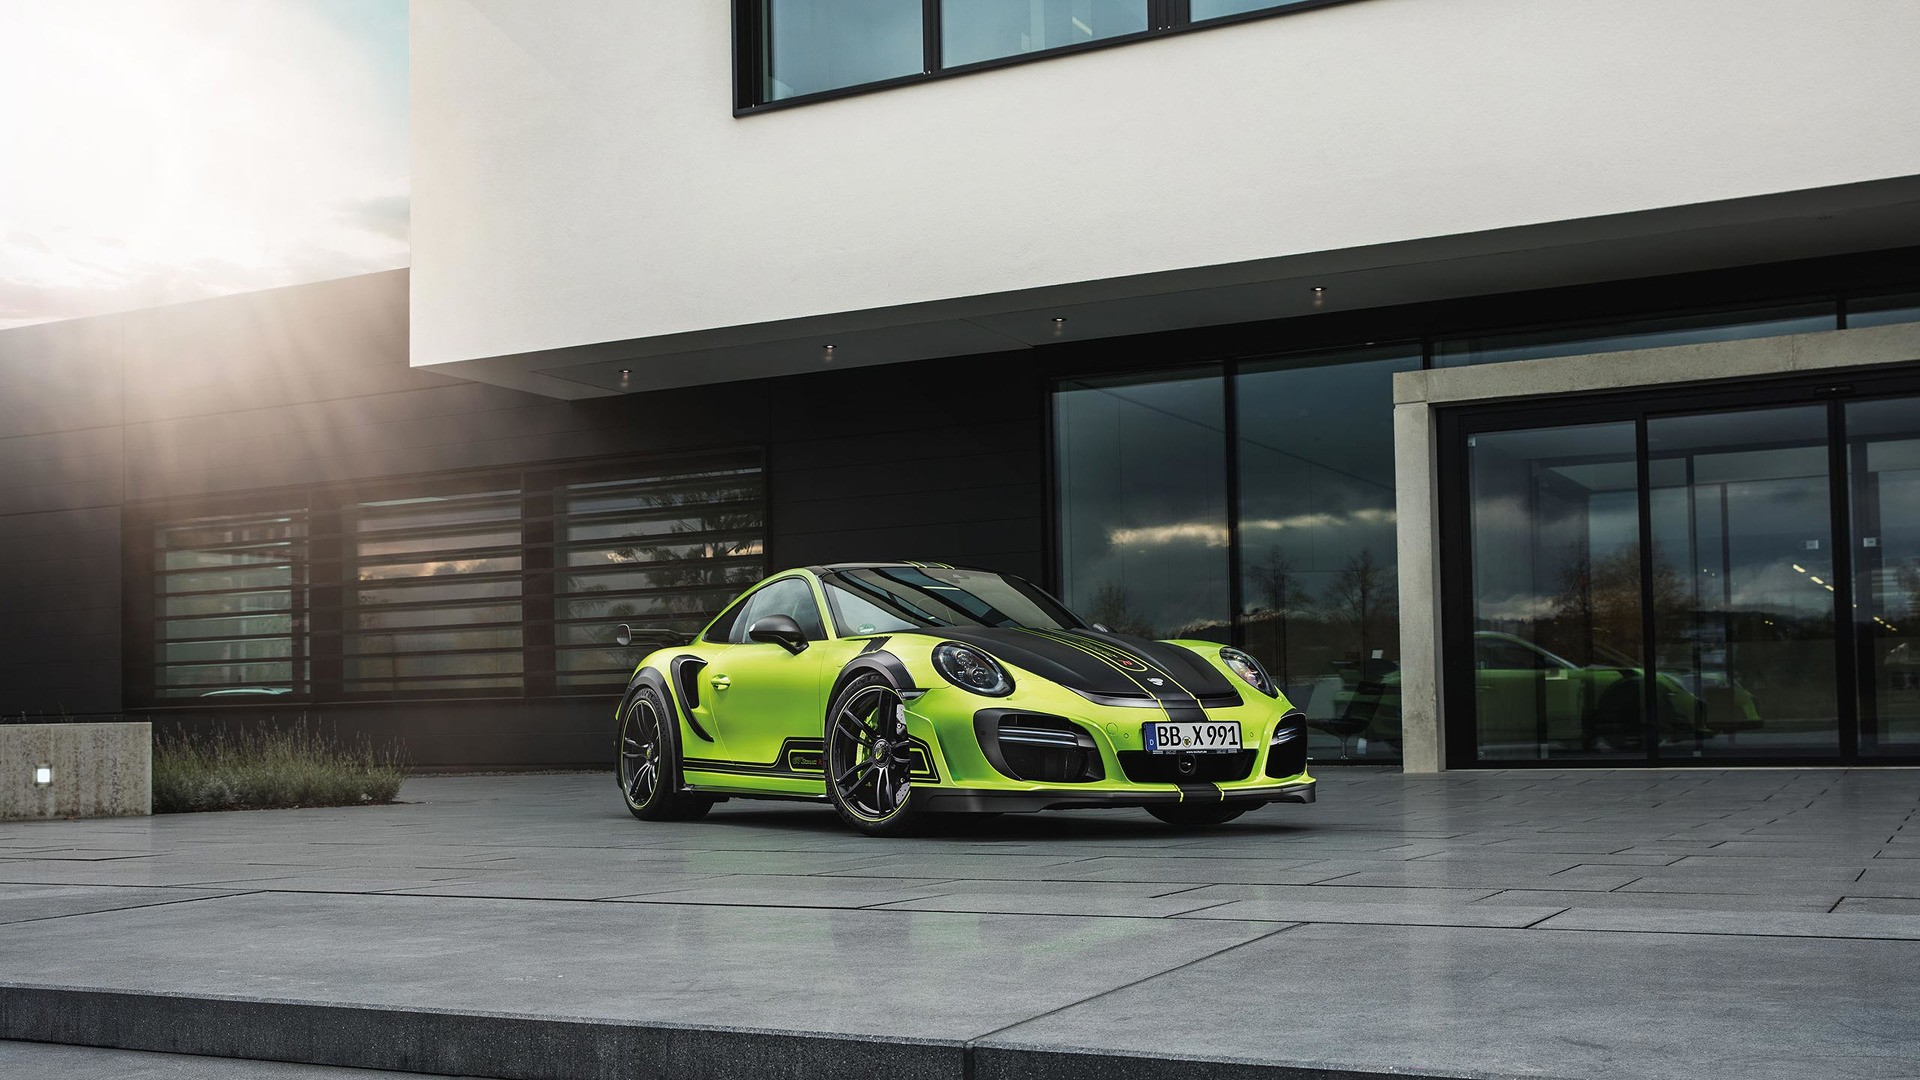 porsche-911-turbo-techart-gtstreet-r-1